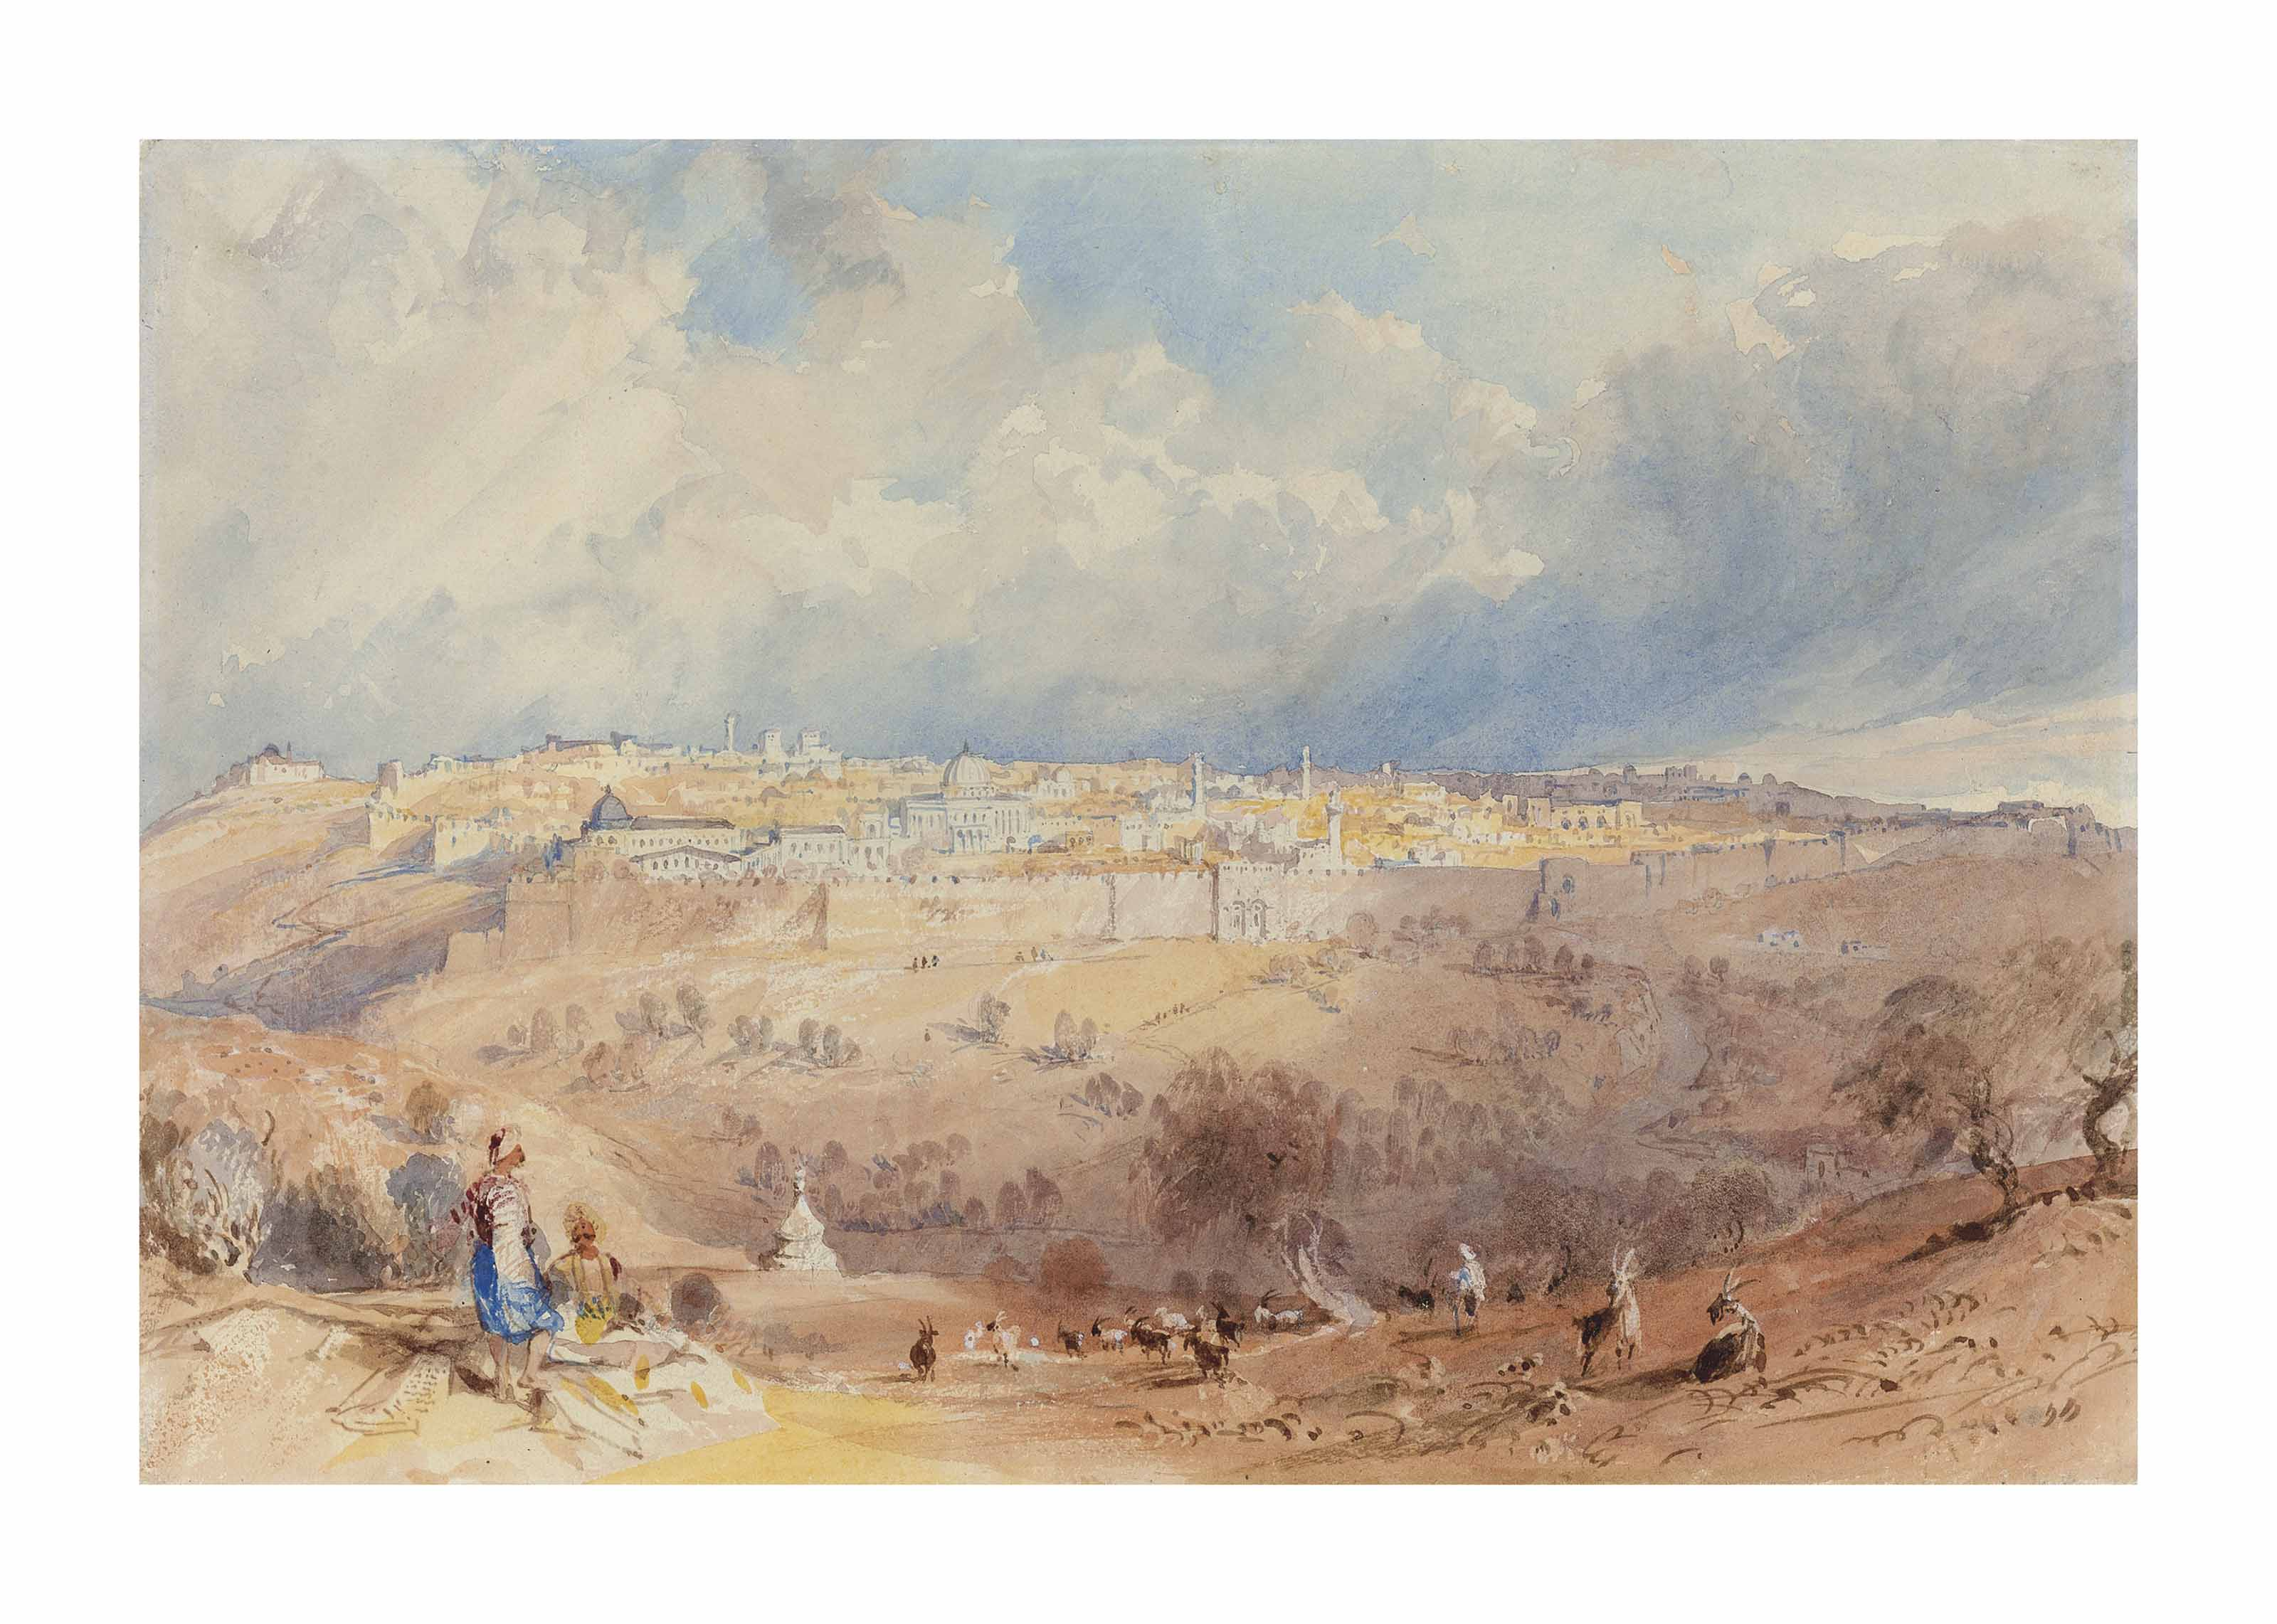 Jerusalem from the Mount of Olives, by the Tomb of Absalom